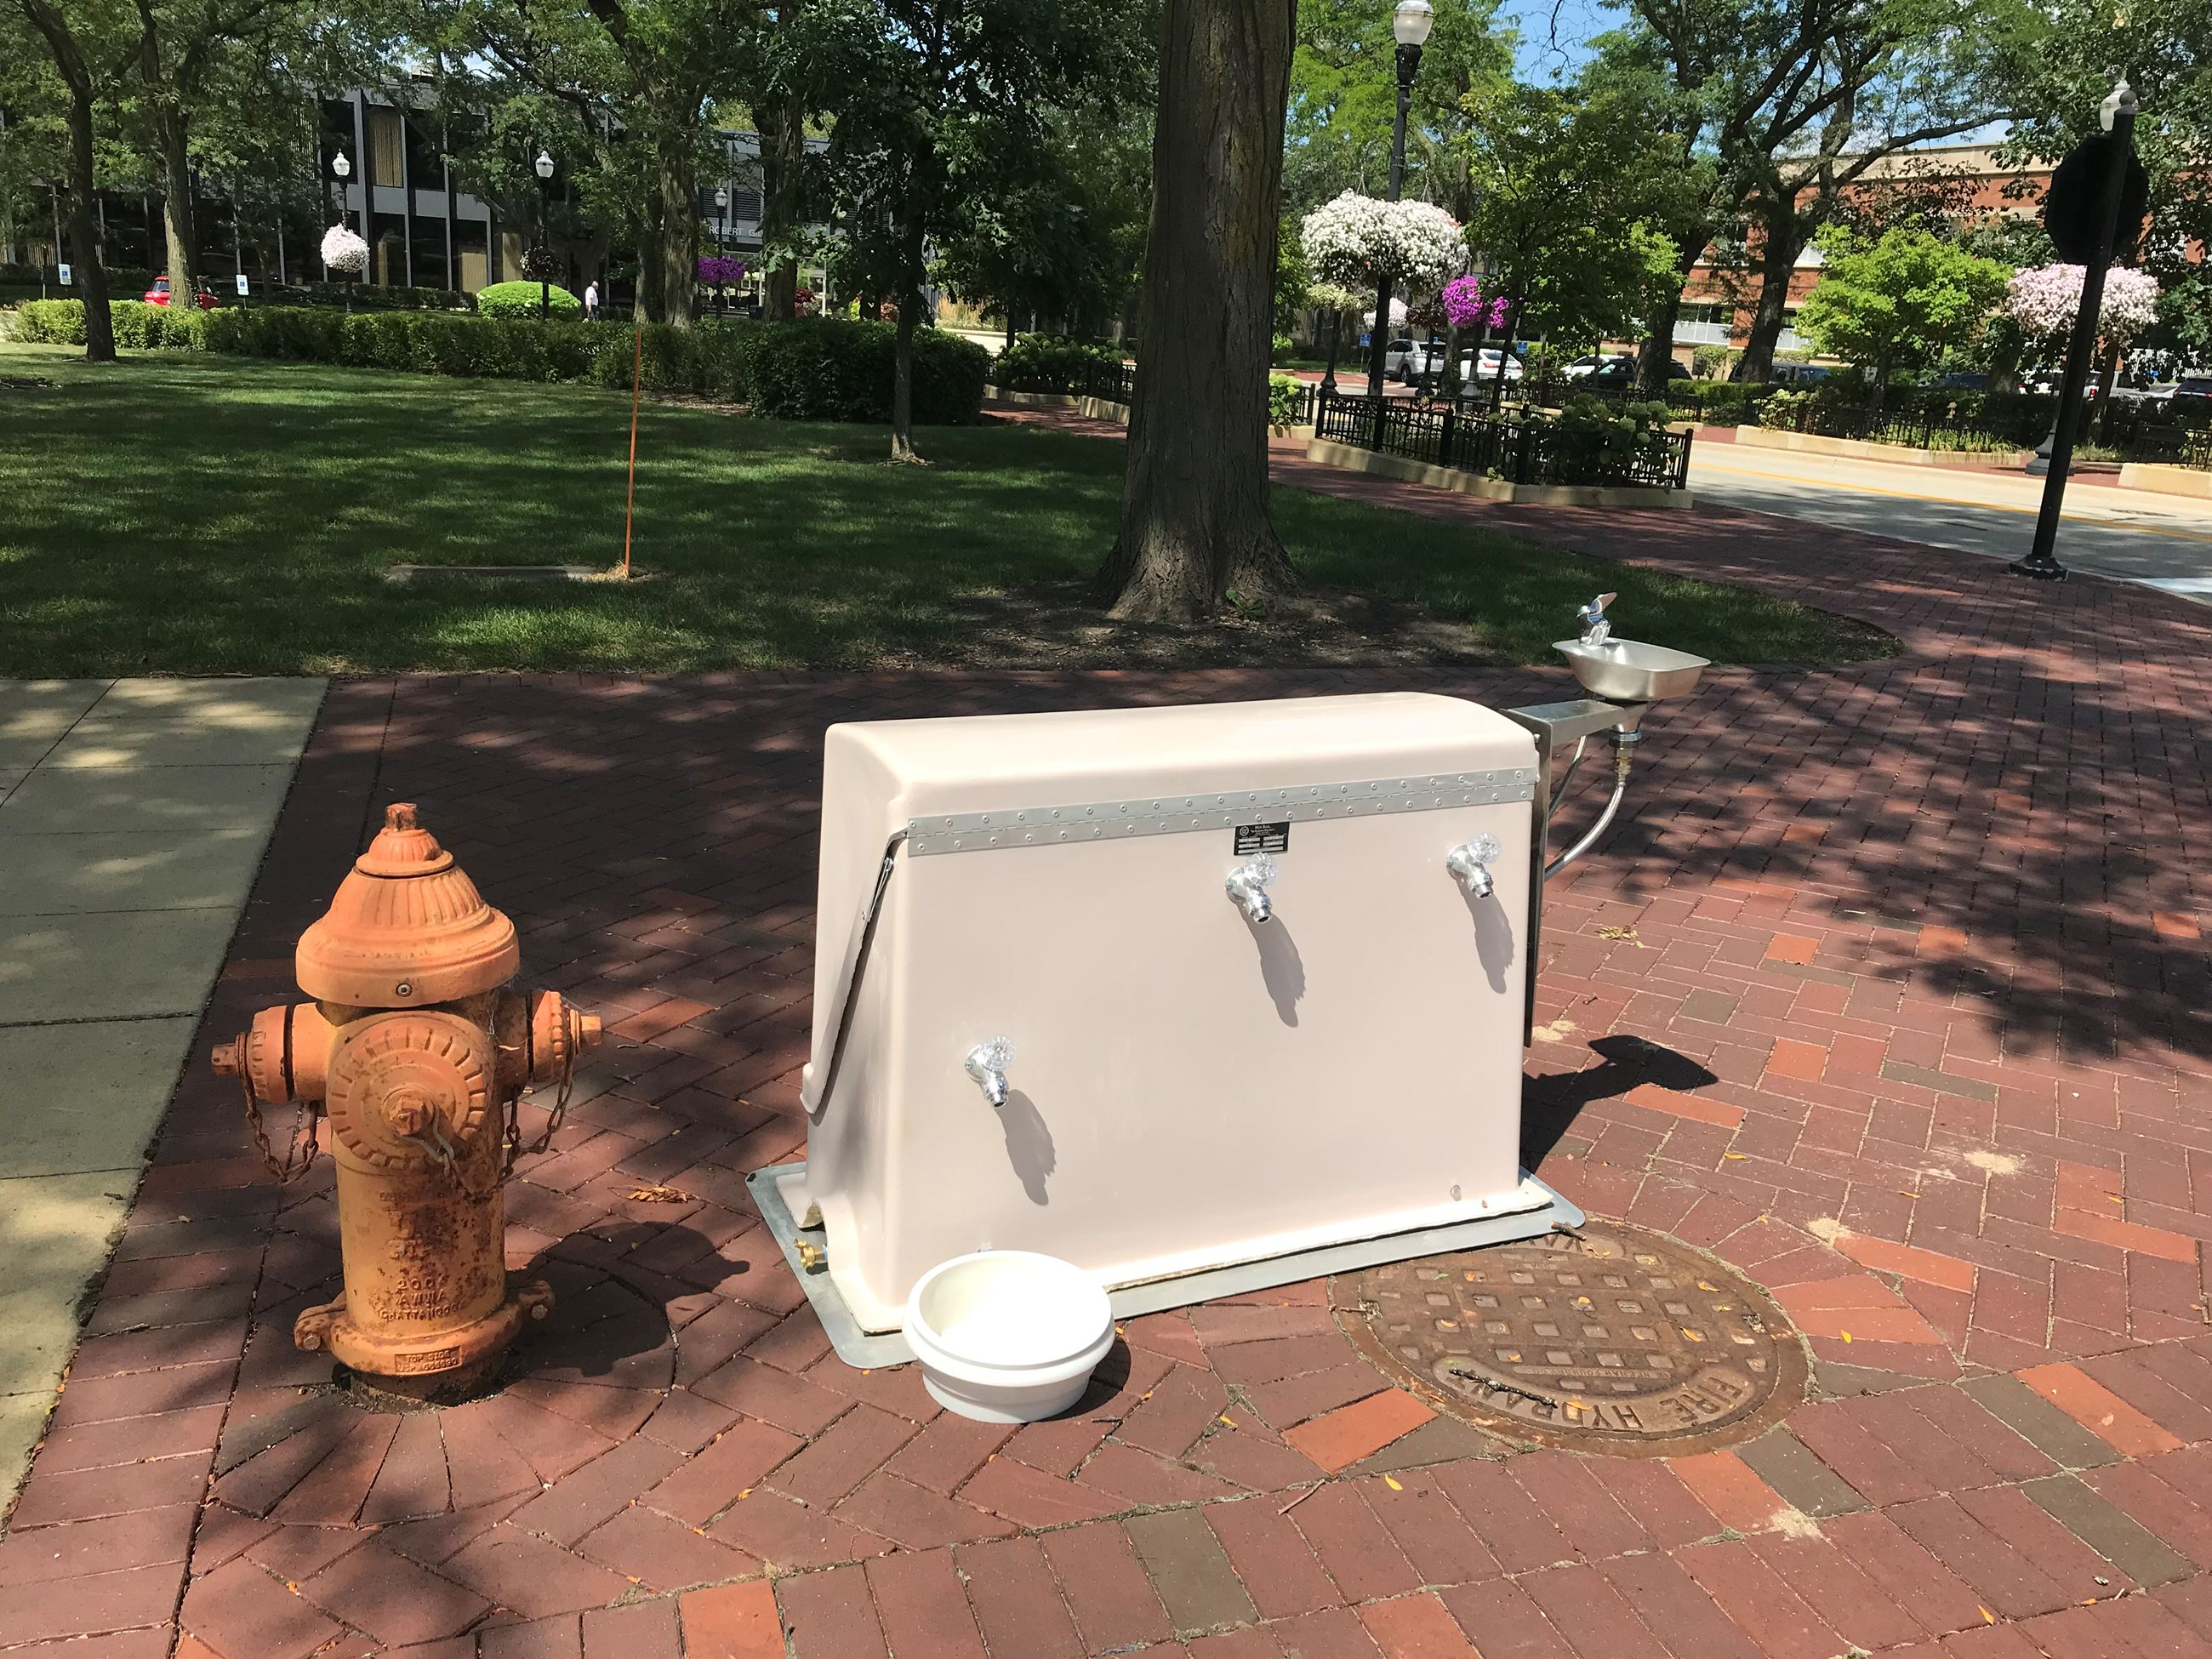 picture of water station in a park hooked up to a fire hydrant